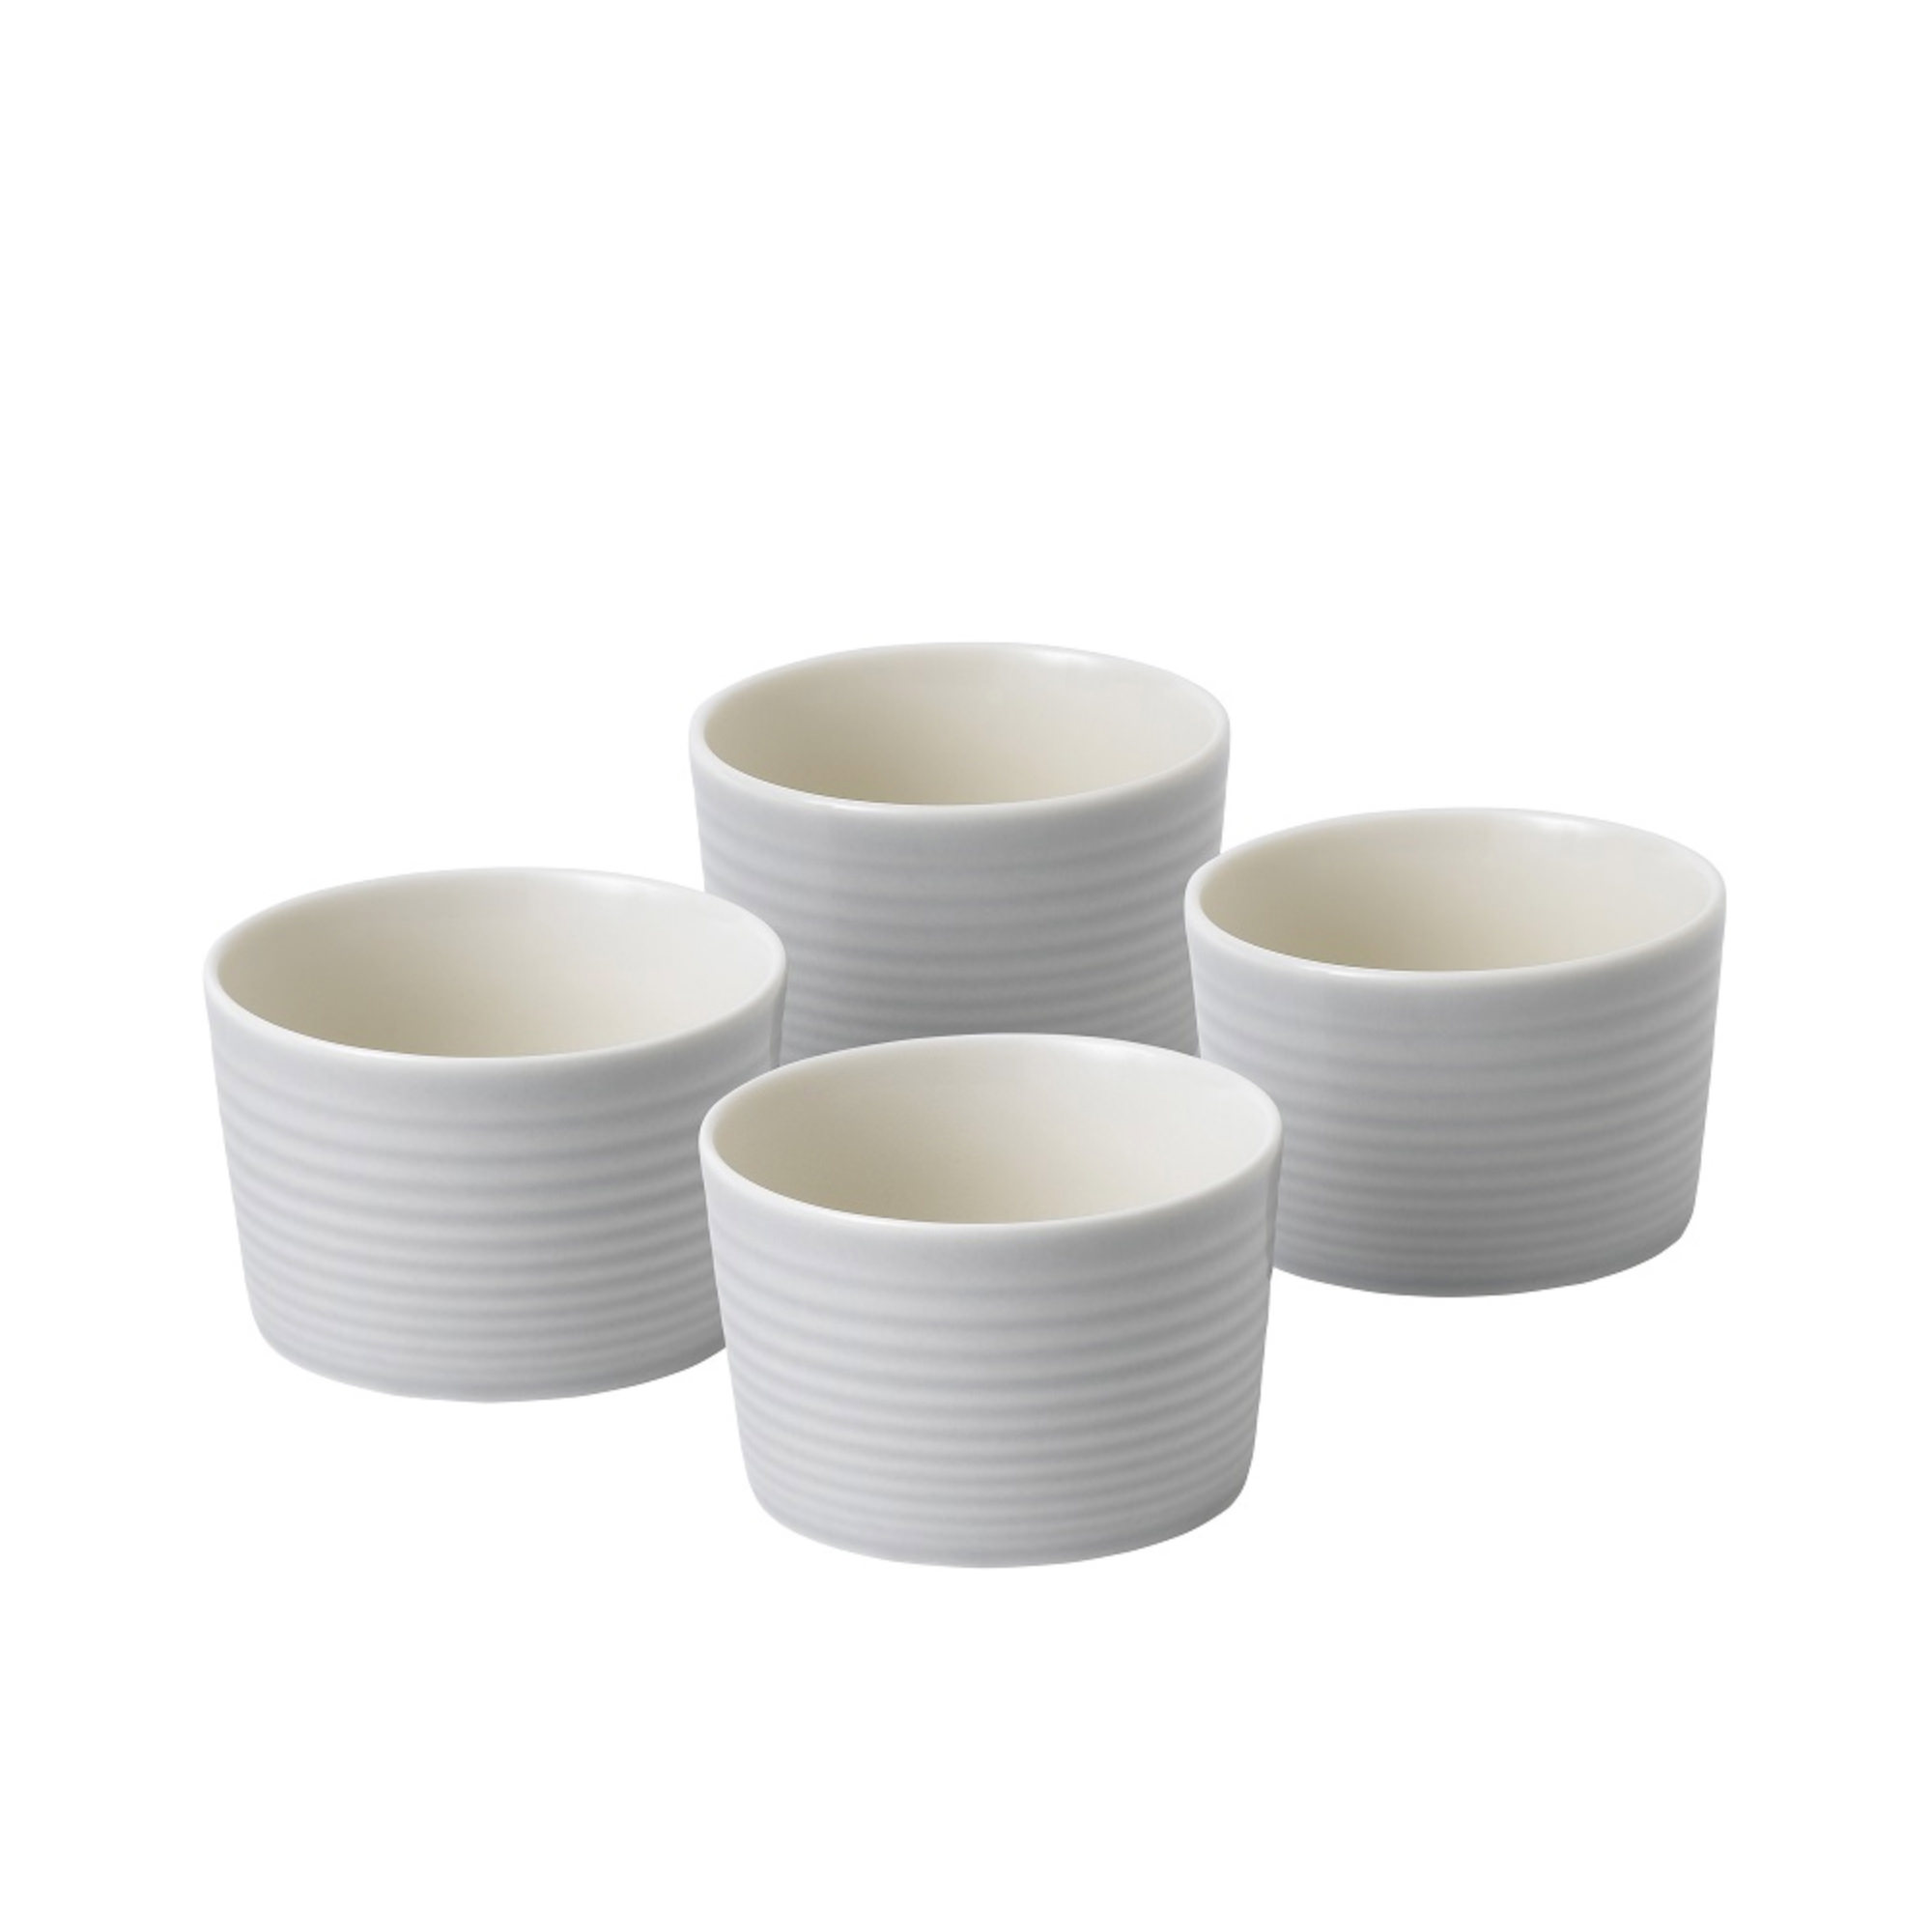 Royal Doulton Gordon Ramsay Maze 4pc Ramekin Set 10x6cm Grey